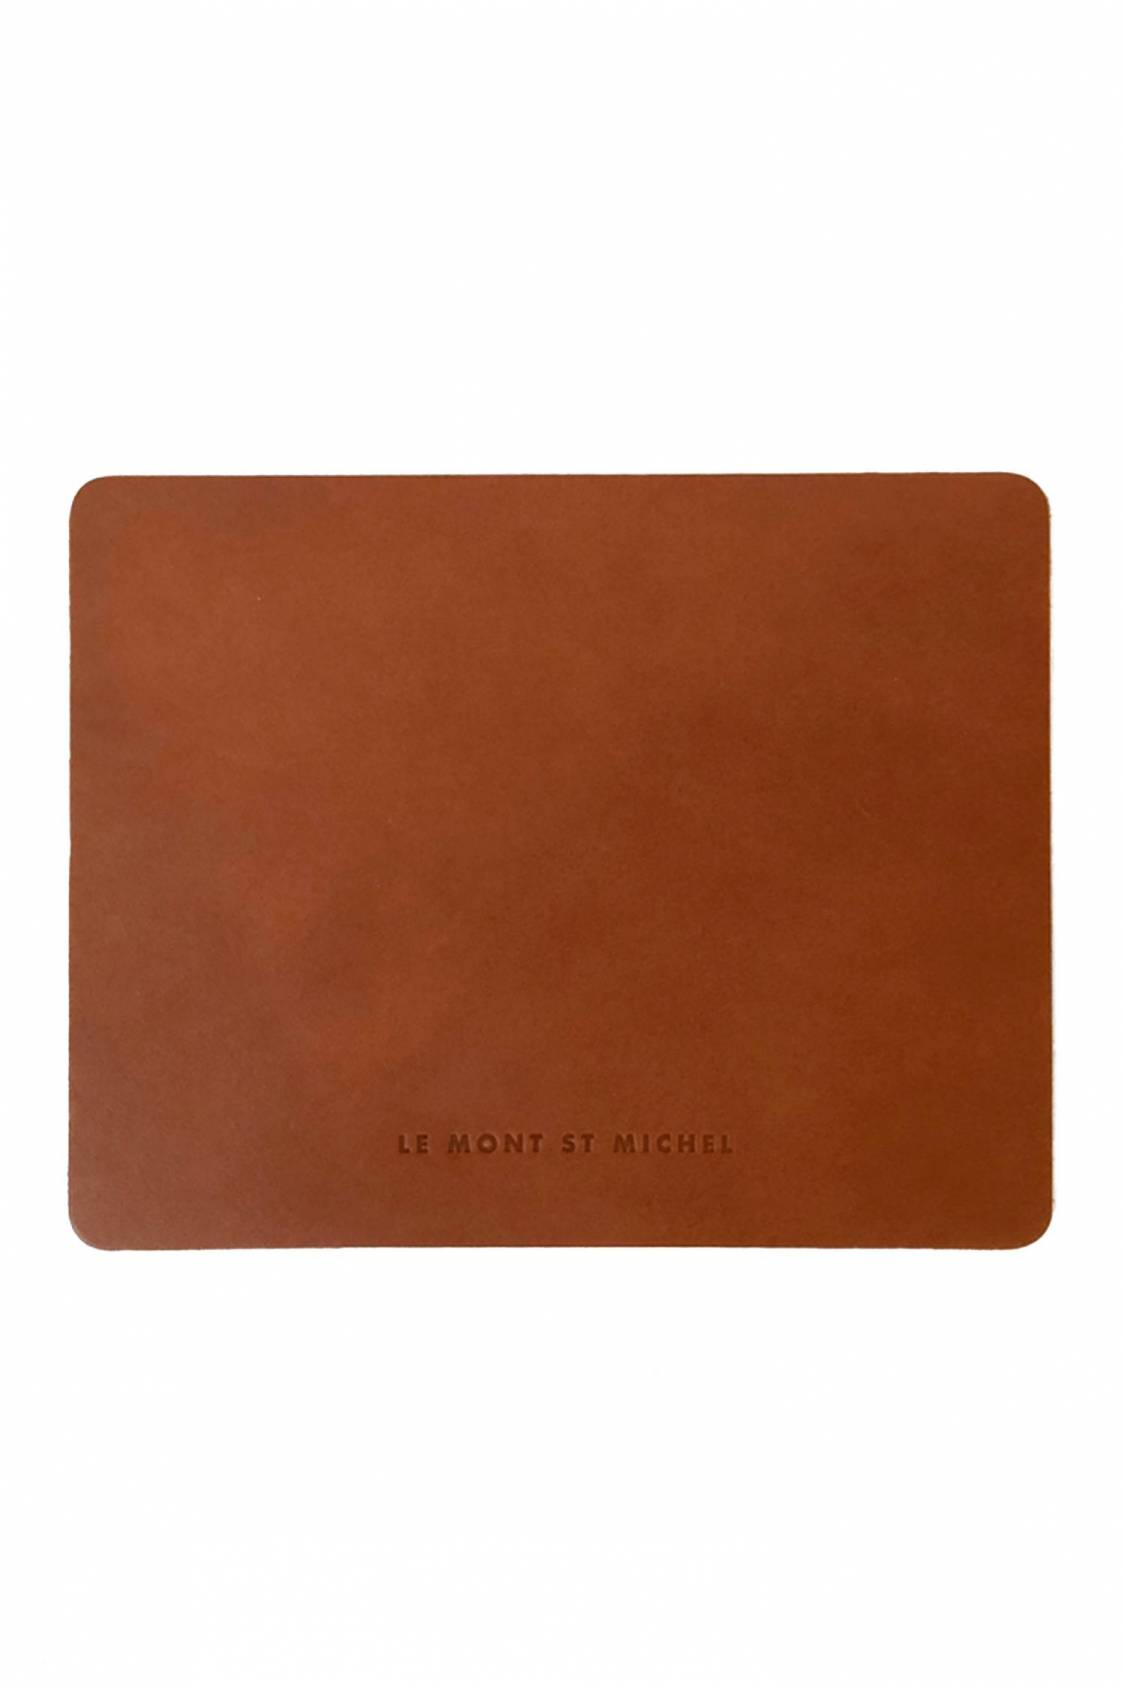 Mousepad in leather